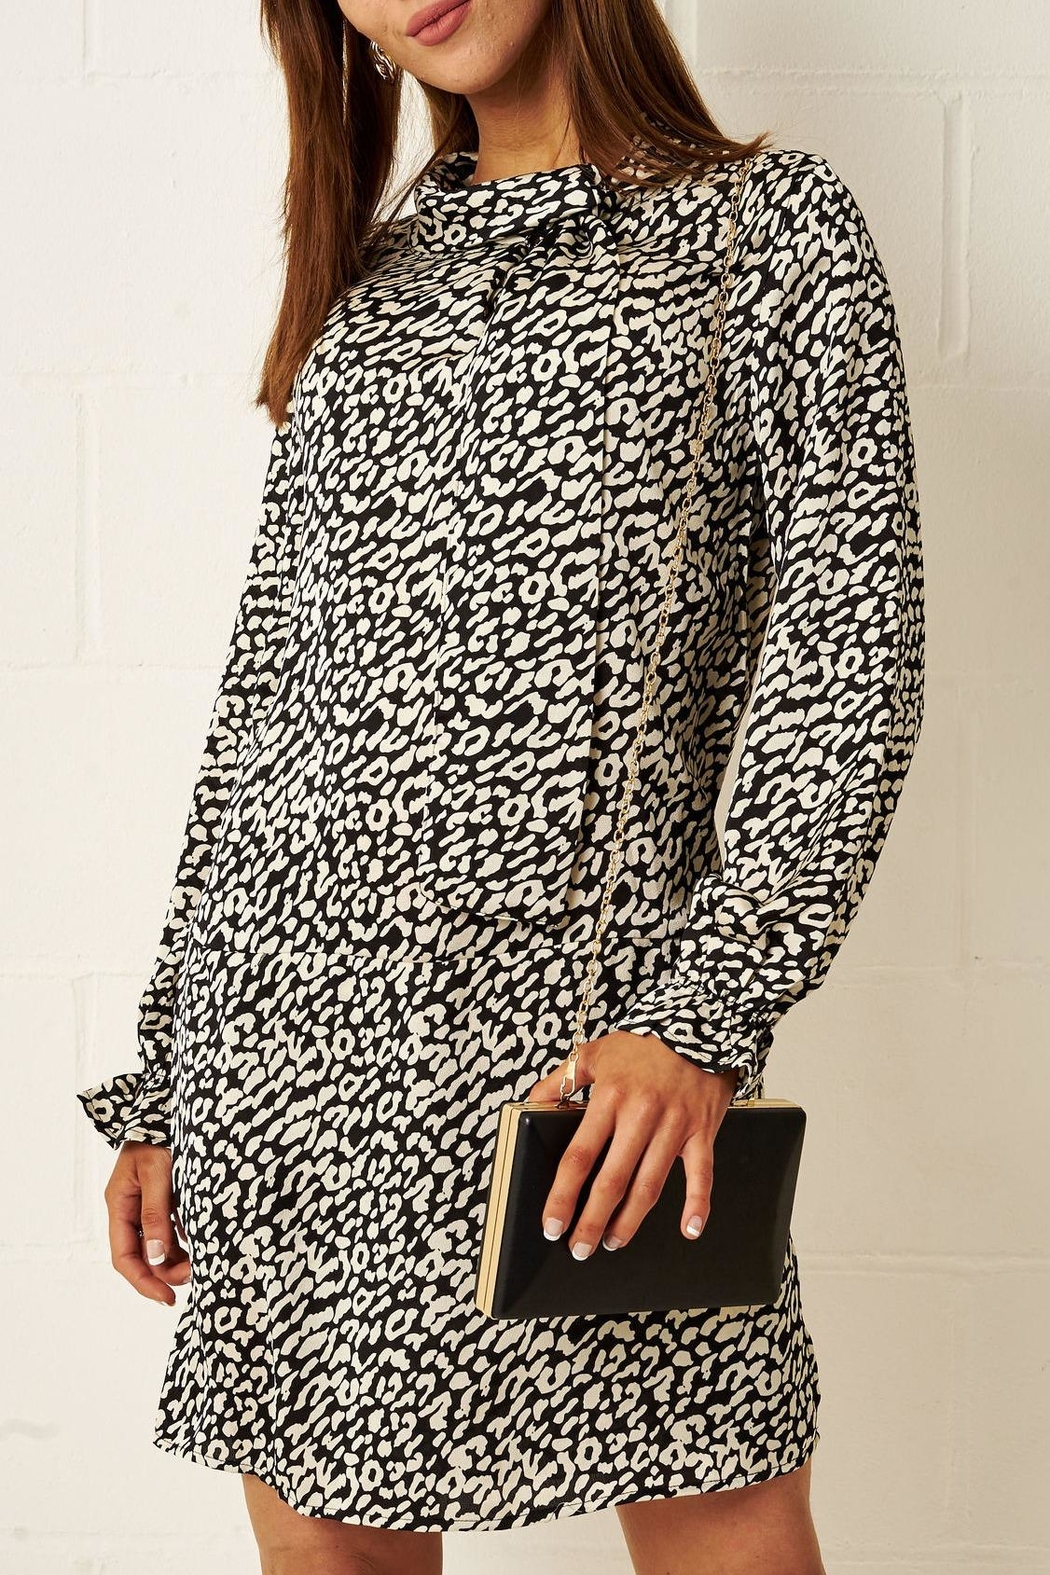 frontrow Cream Leopard-Print Dress - Main Image